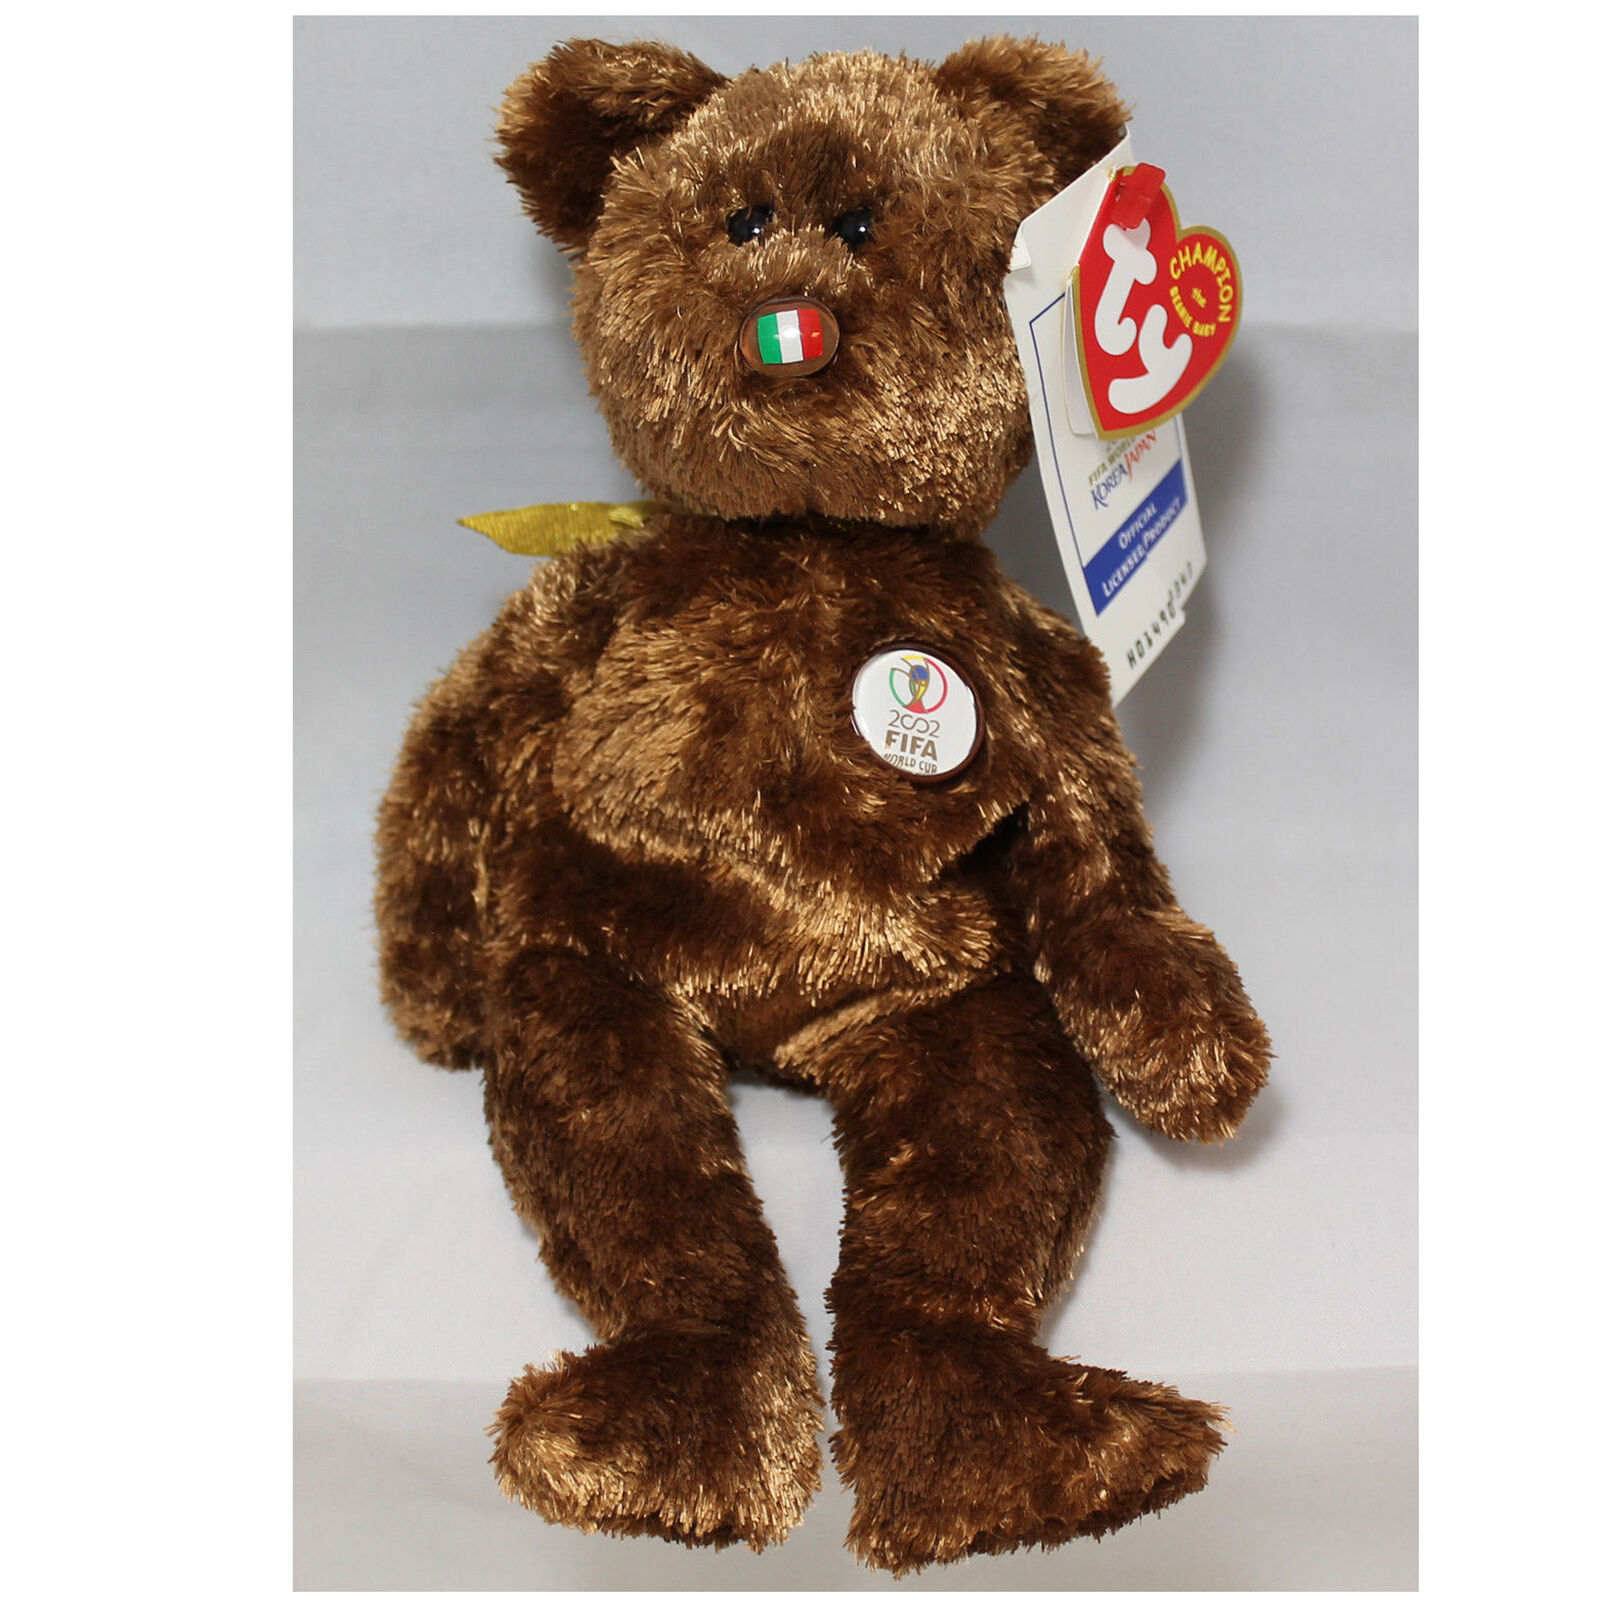 ccceb08622a Retired Ty Beanie Baby 2002 FIFA World Cup England The Champion Bear for  sale online